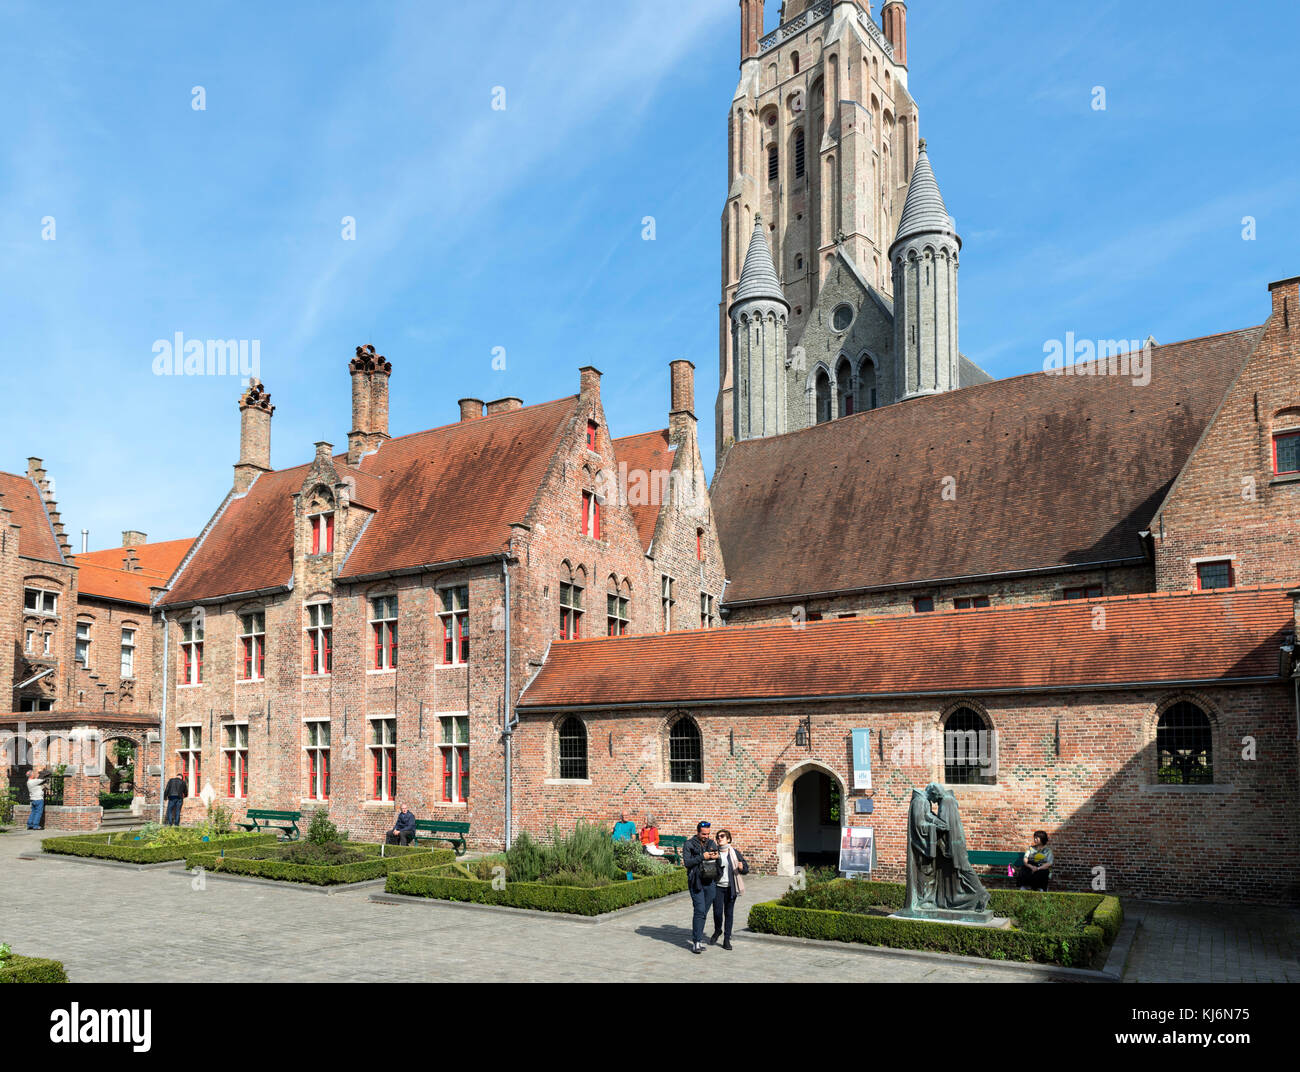 Old St John's Hospital (Oud Sint-Janshospitaal) with spire of Church of Our Lady (Onze-Lieve-Vrouwekerk) behind, - Stock Image